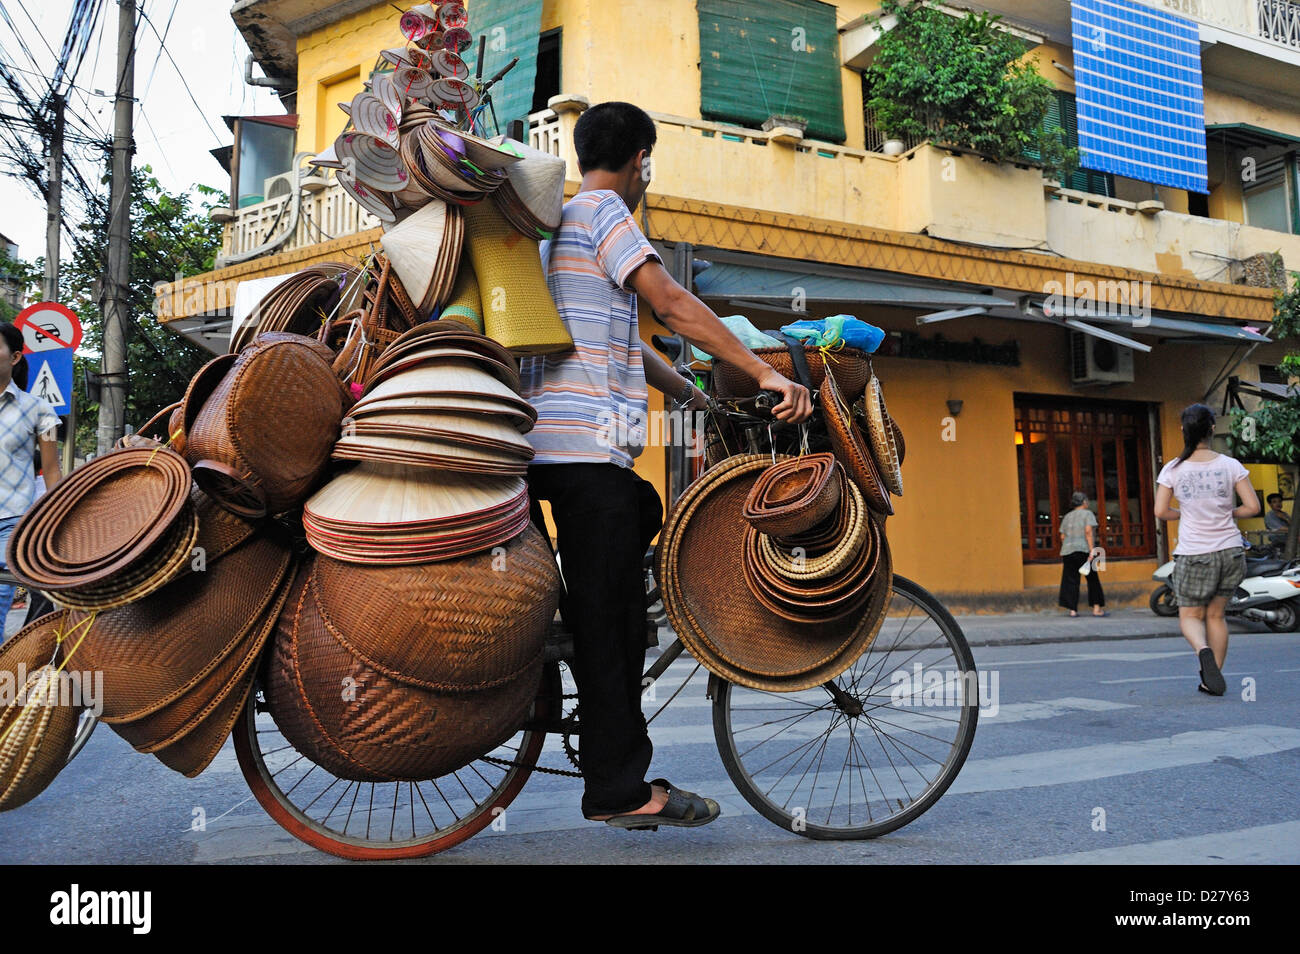 Man on a bicycle selling straw bowls and hats, Hanoi, Vietnam - Stock Image